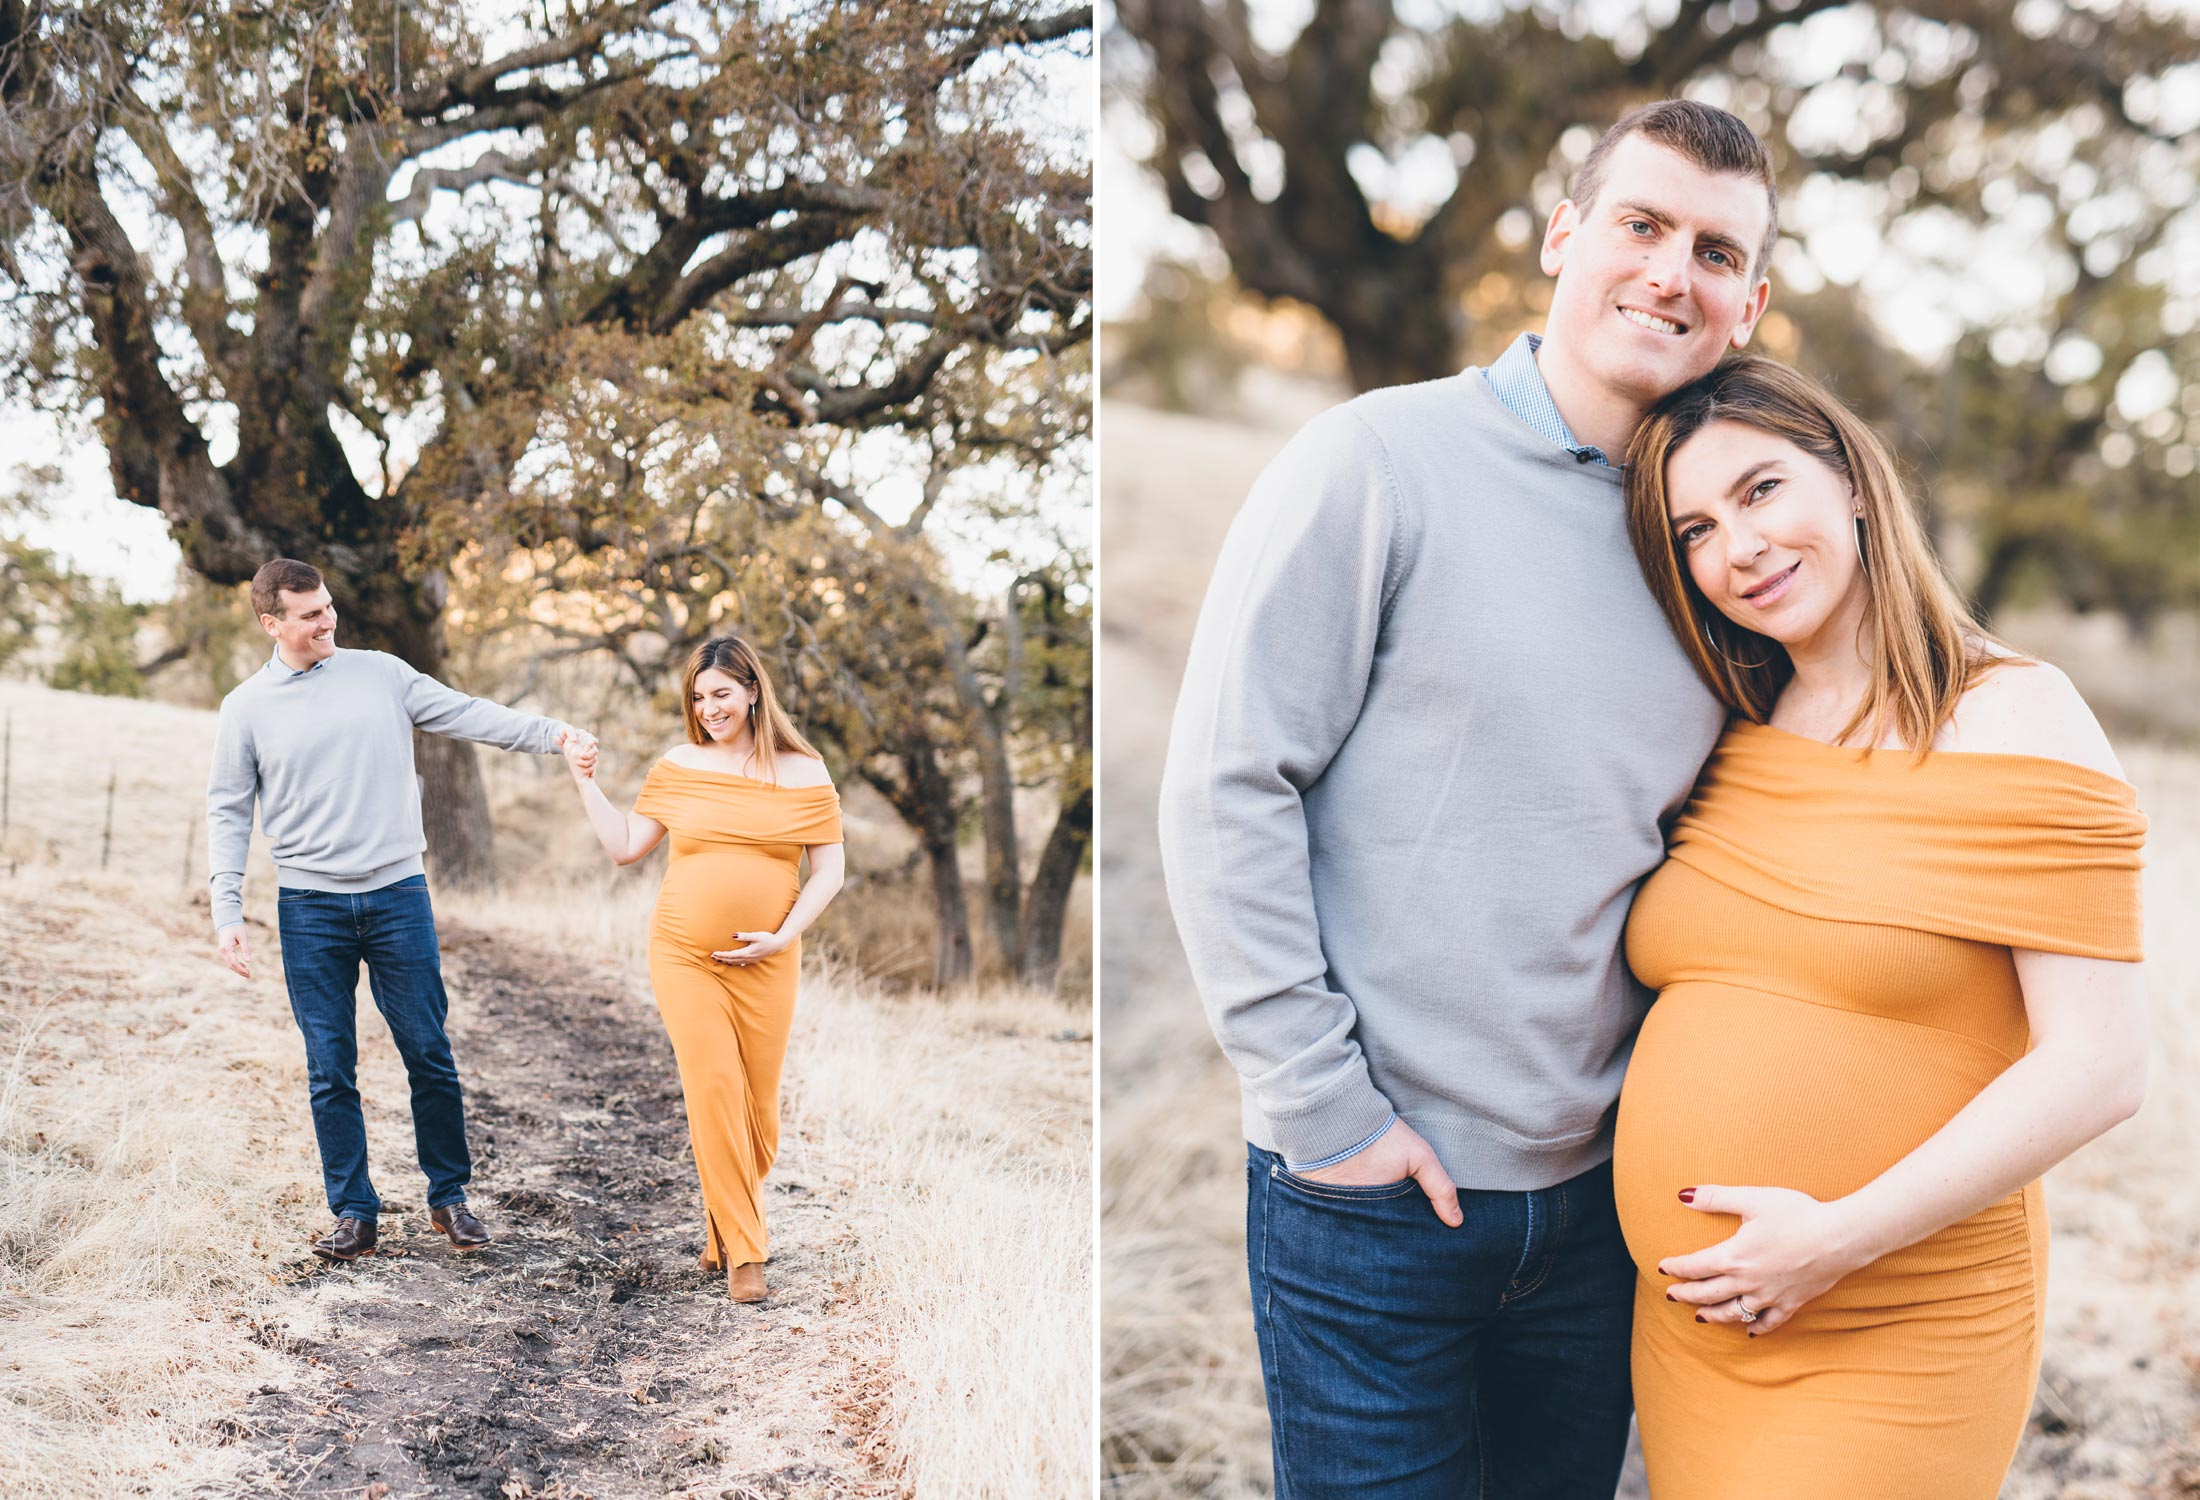 walnut-creek-maternity-photographer-at-the-shell-ridge-open-space.jpg